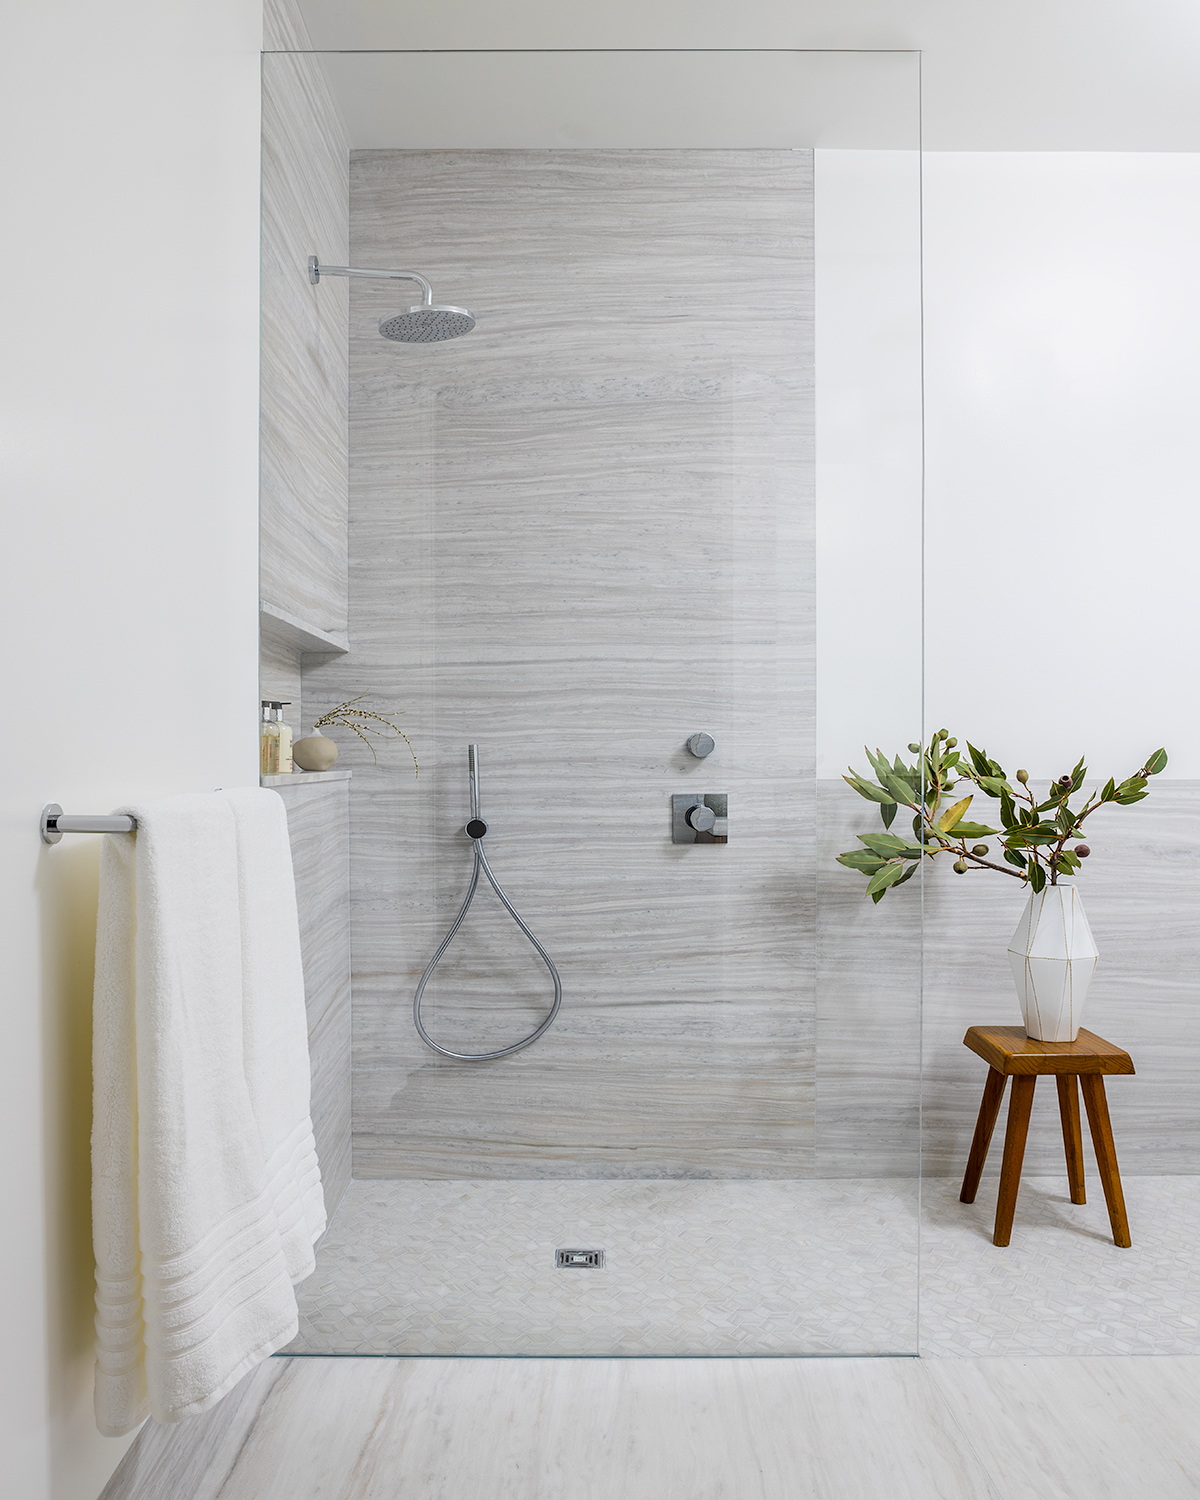 primary bath with stall shower at 532 W 20 condominiums in west chelsea